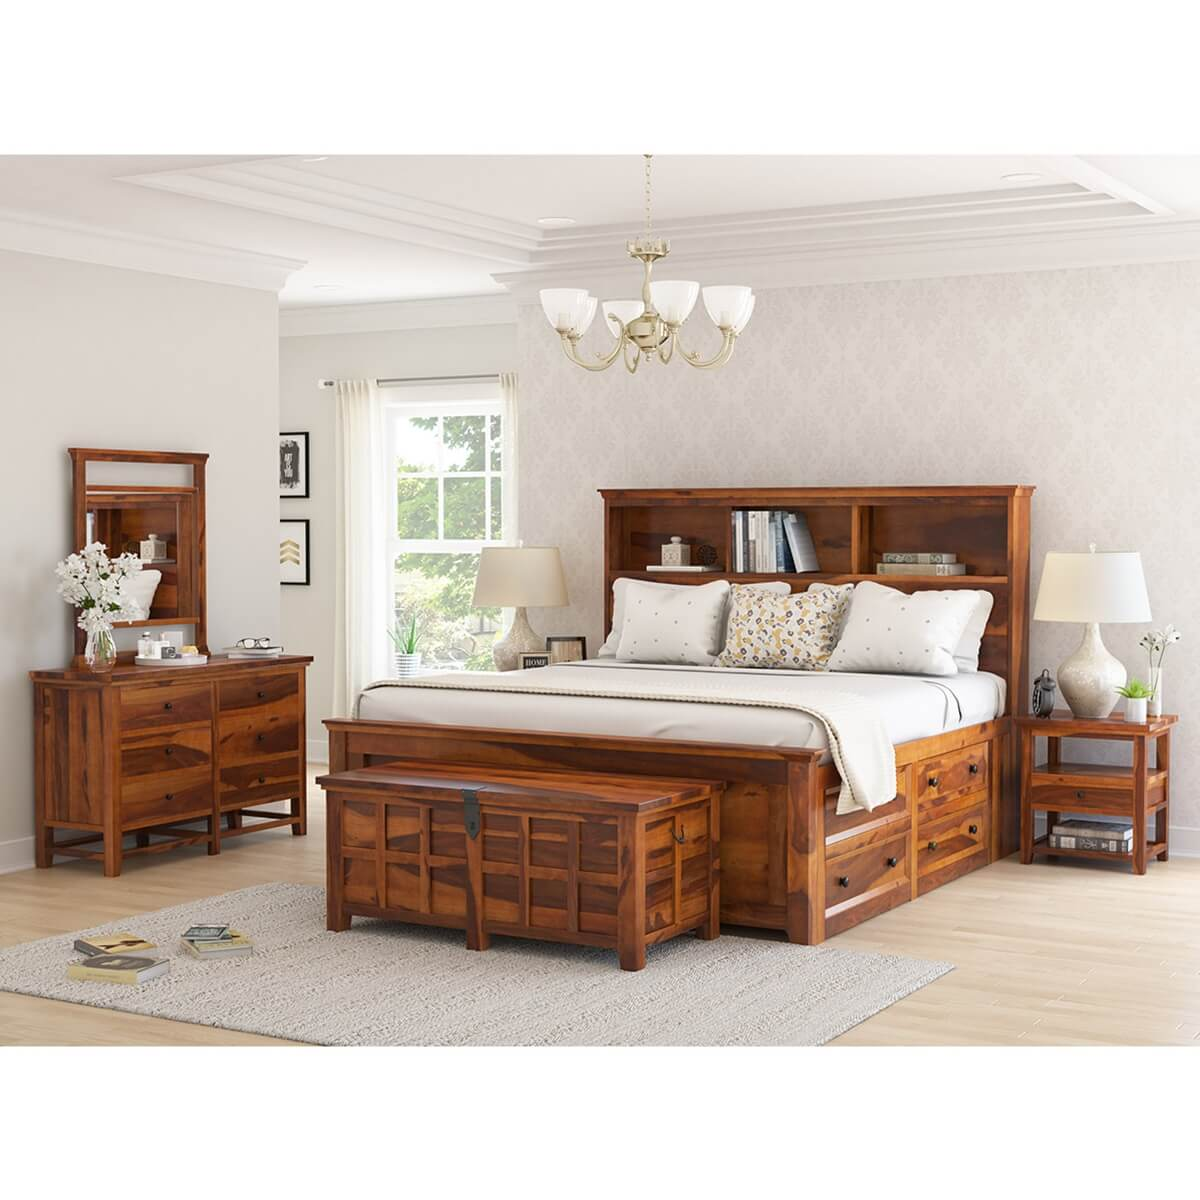 mission modern solid wood king size platform bed 7pc bedroom set. Black Bedroom Furniture Sets. Home Design Ideas